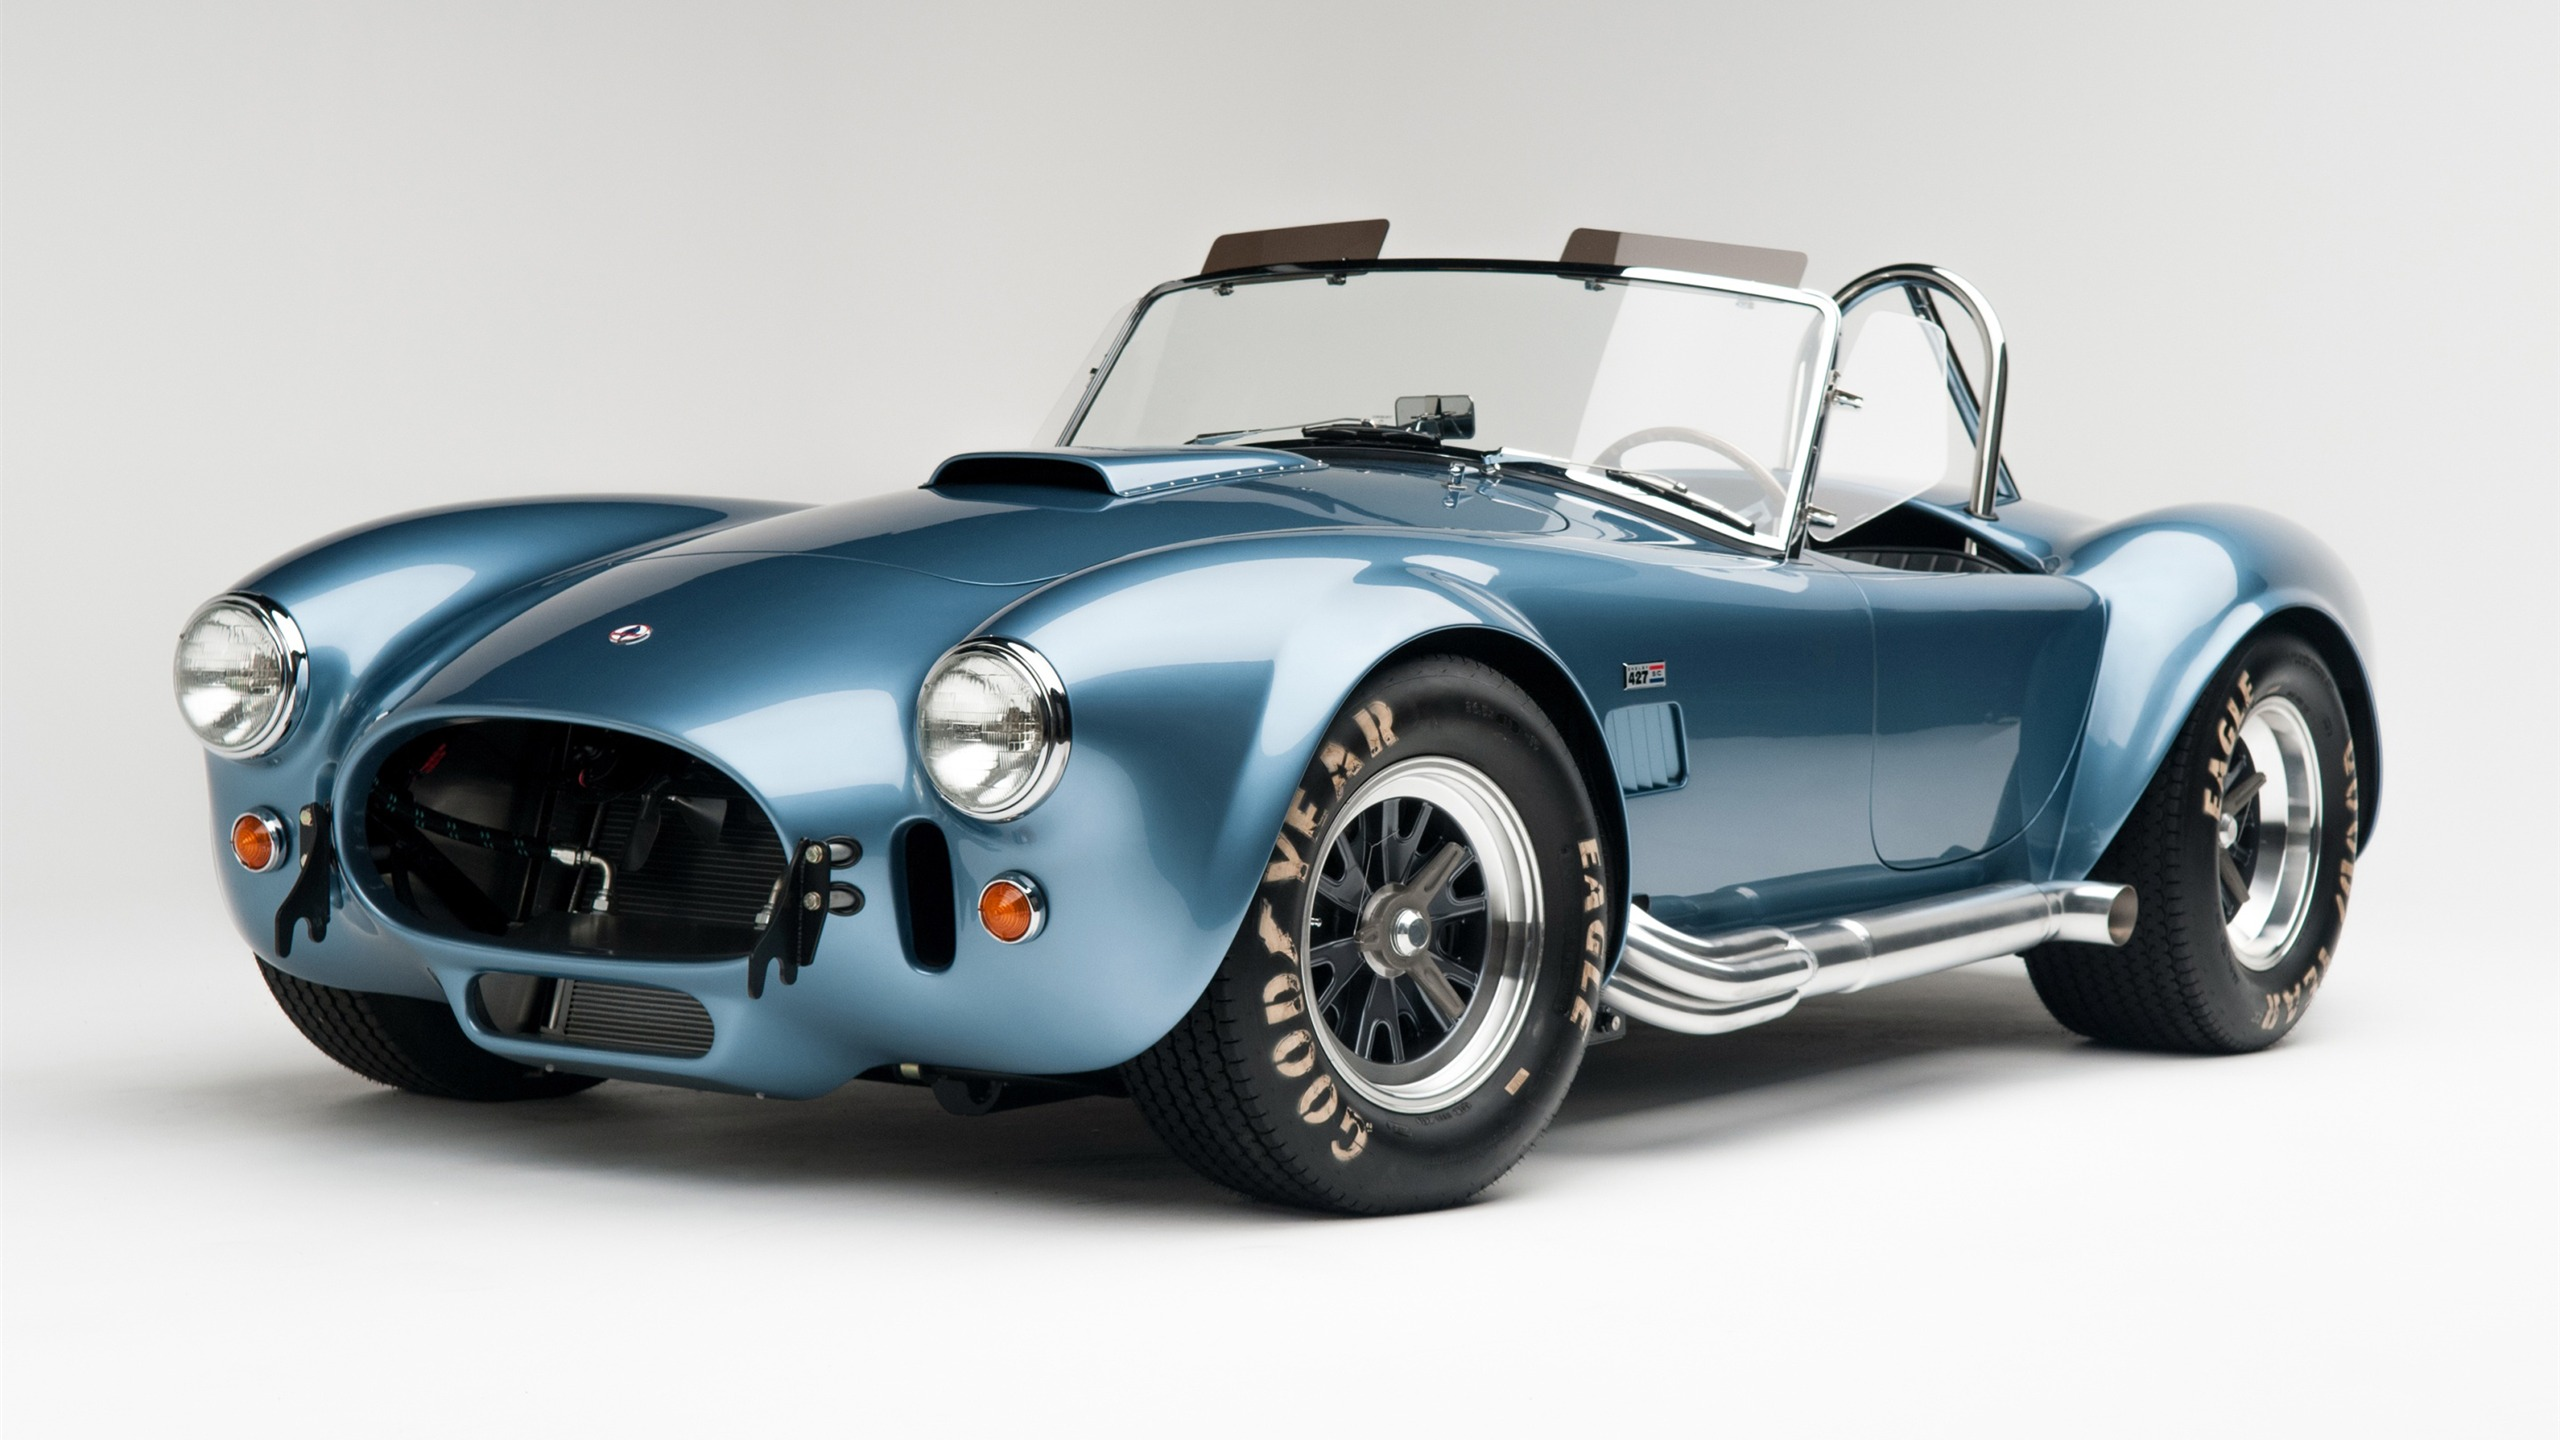 Classic classic car shelby cobra - 2560x1440 wallpaper download